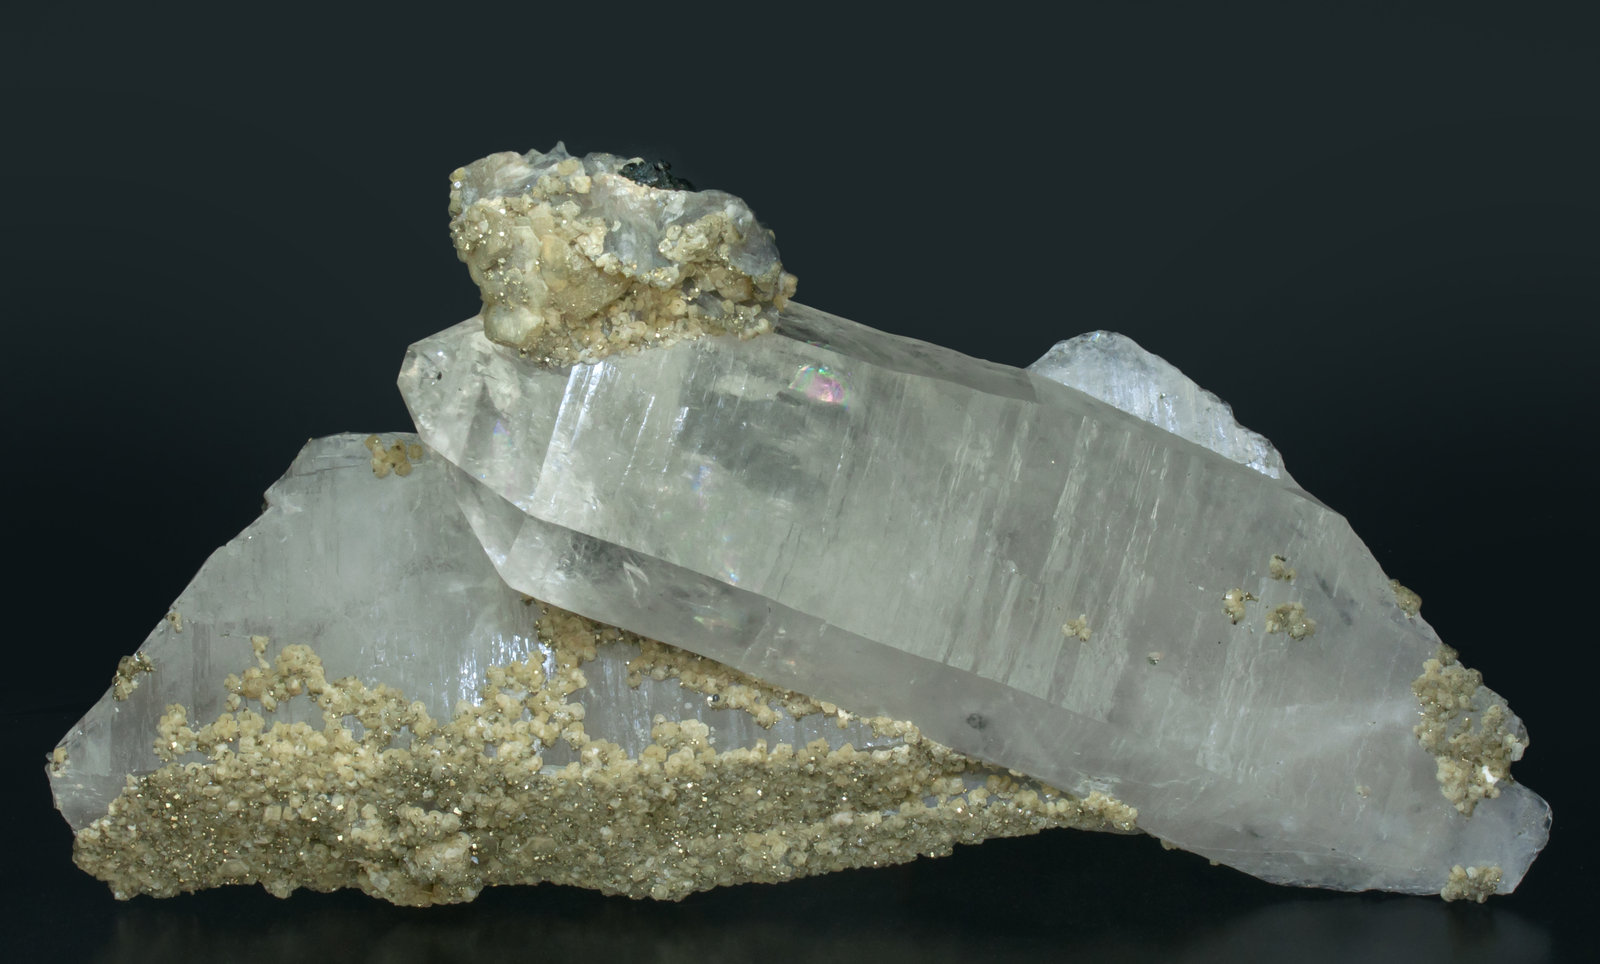 specimens/s_imagesAD6/Quartz-NH57AD6f.jpg